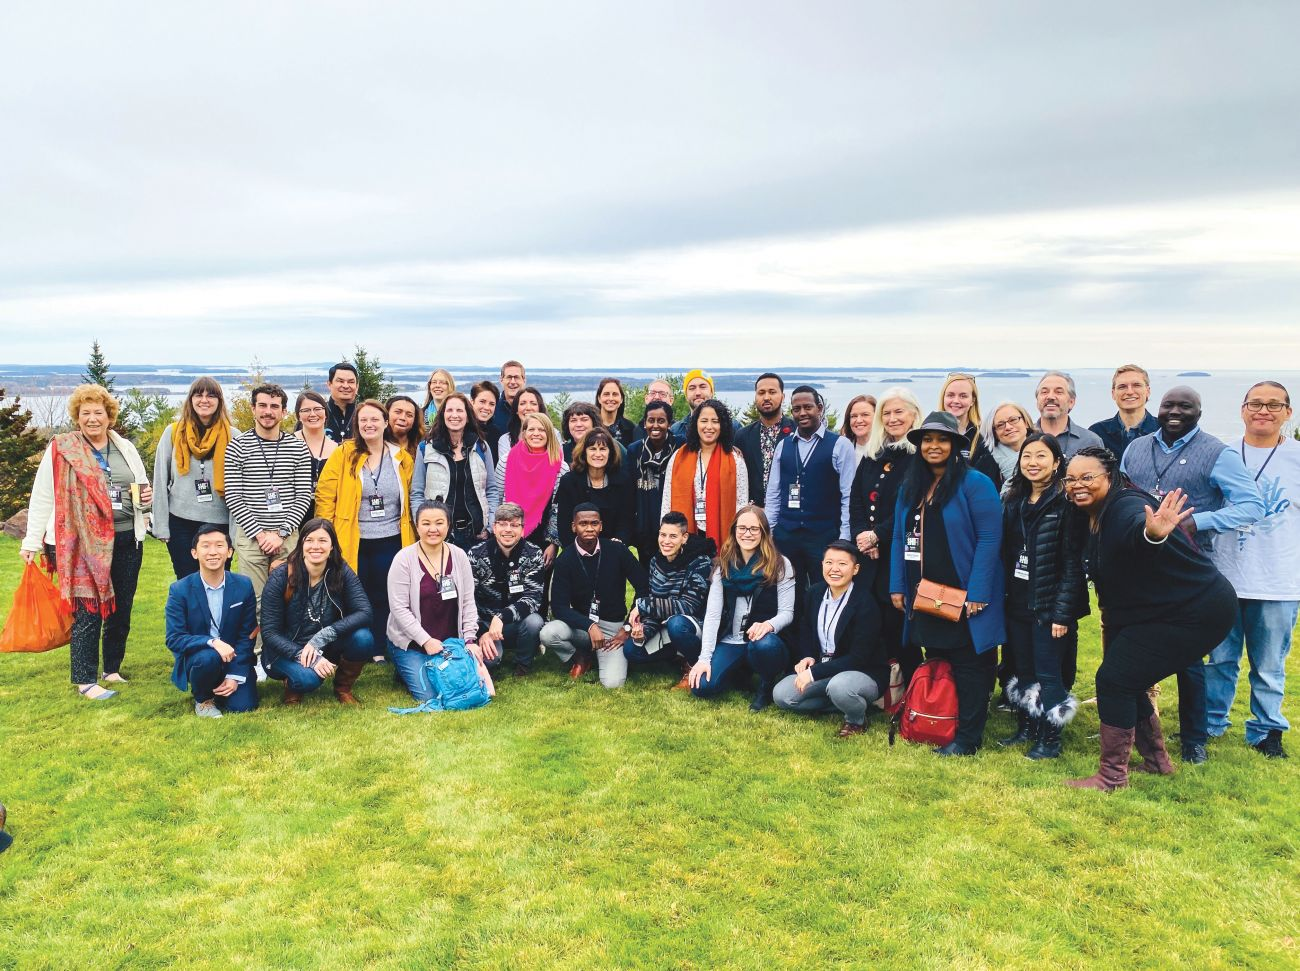 Fifty regional leaders attended PopTech at Point Lookout in Northport, Maine.